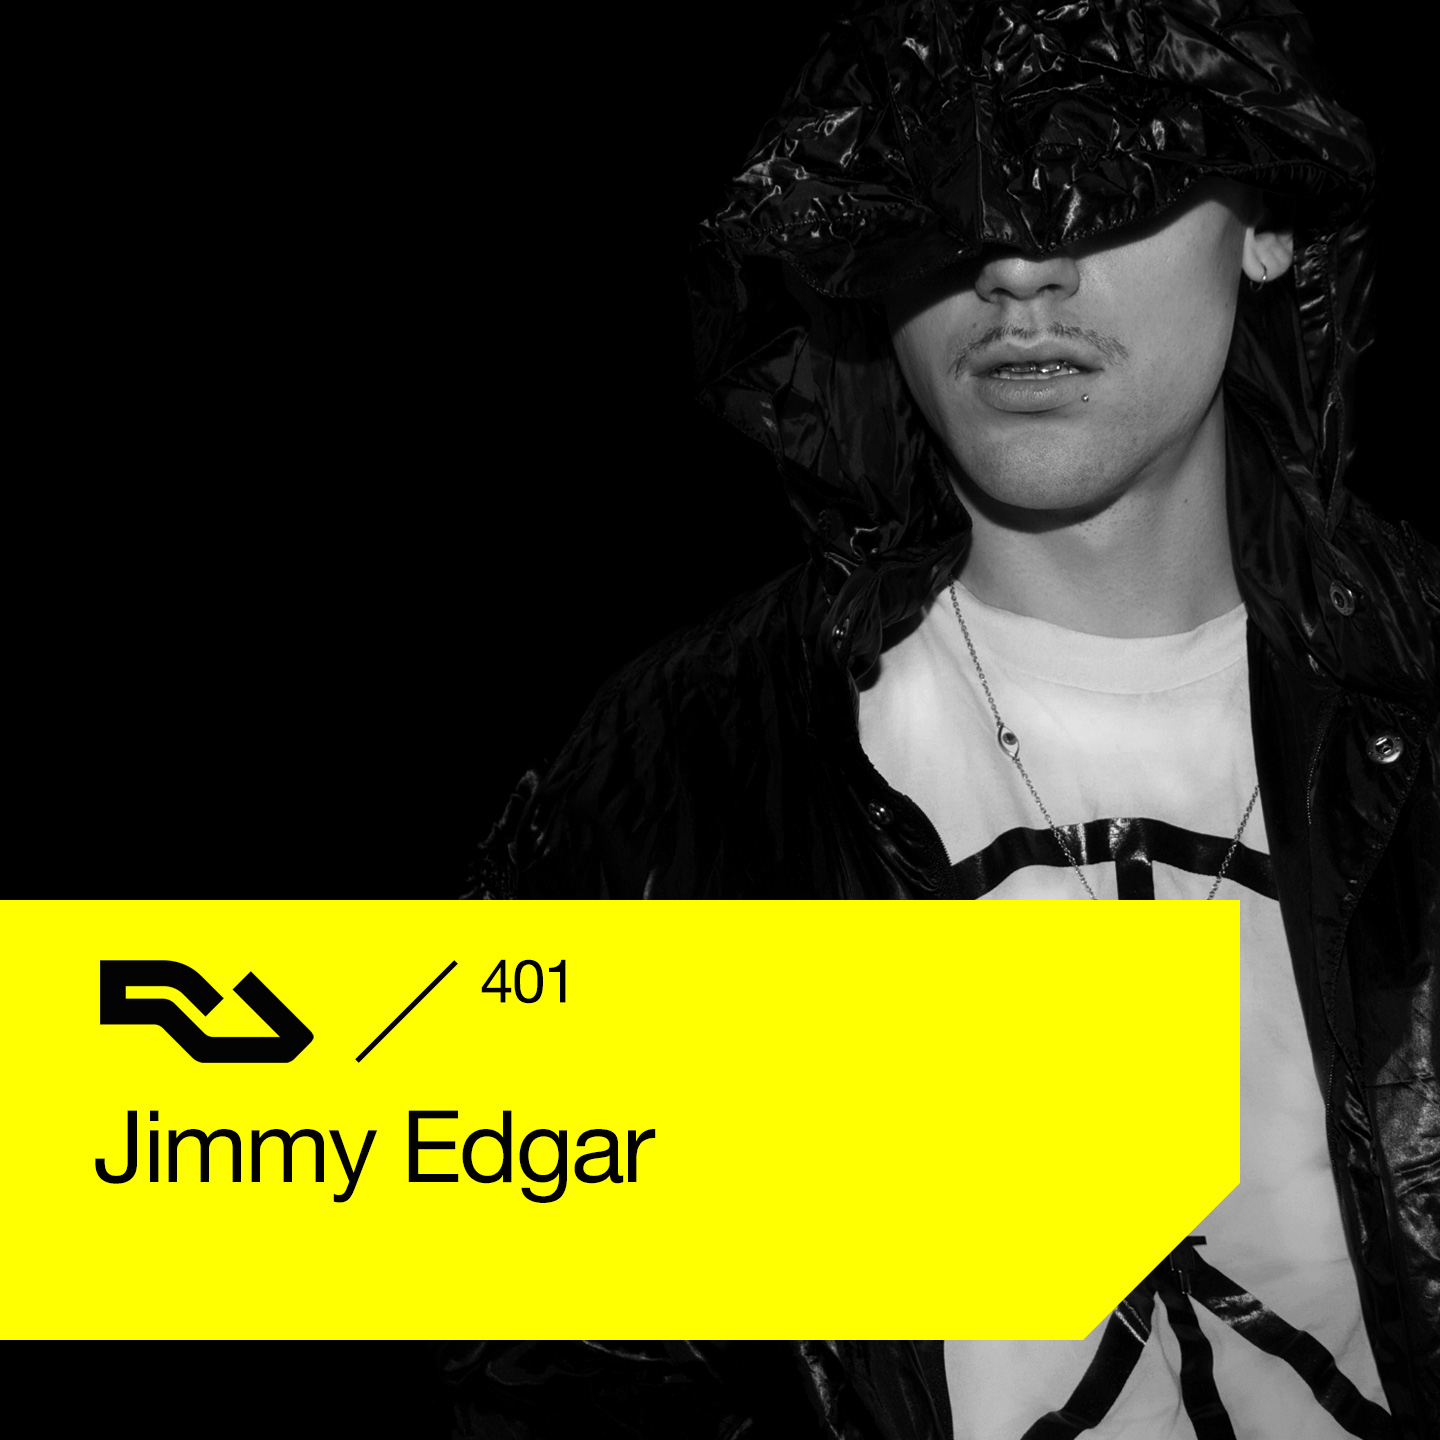 RA.401 Jimmy Edgar